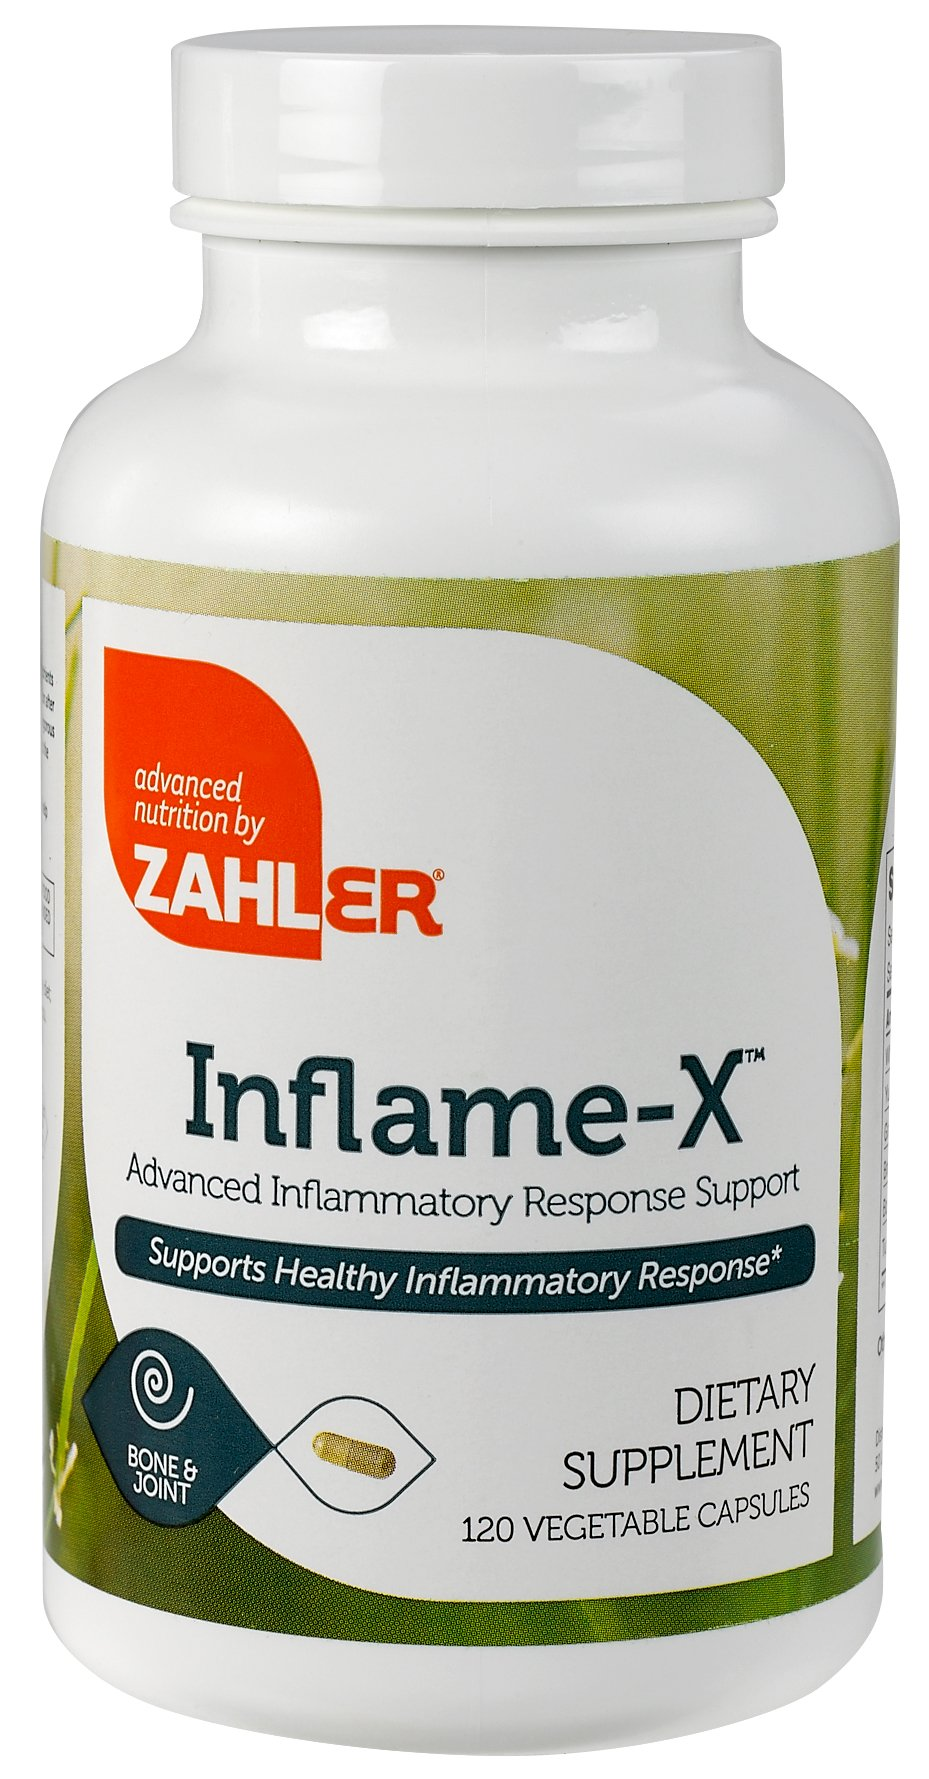 Zahler Inflame-X, Advanced Inflammation Reducer, Contains Turmeric Boswellia and much more which acts as a powerful Anti-Inflammatory Supplement, Certified Kosher, 120 Capsules by Advanced Nutrition by Zahler